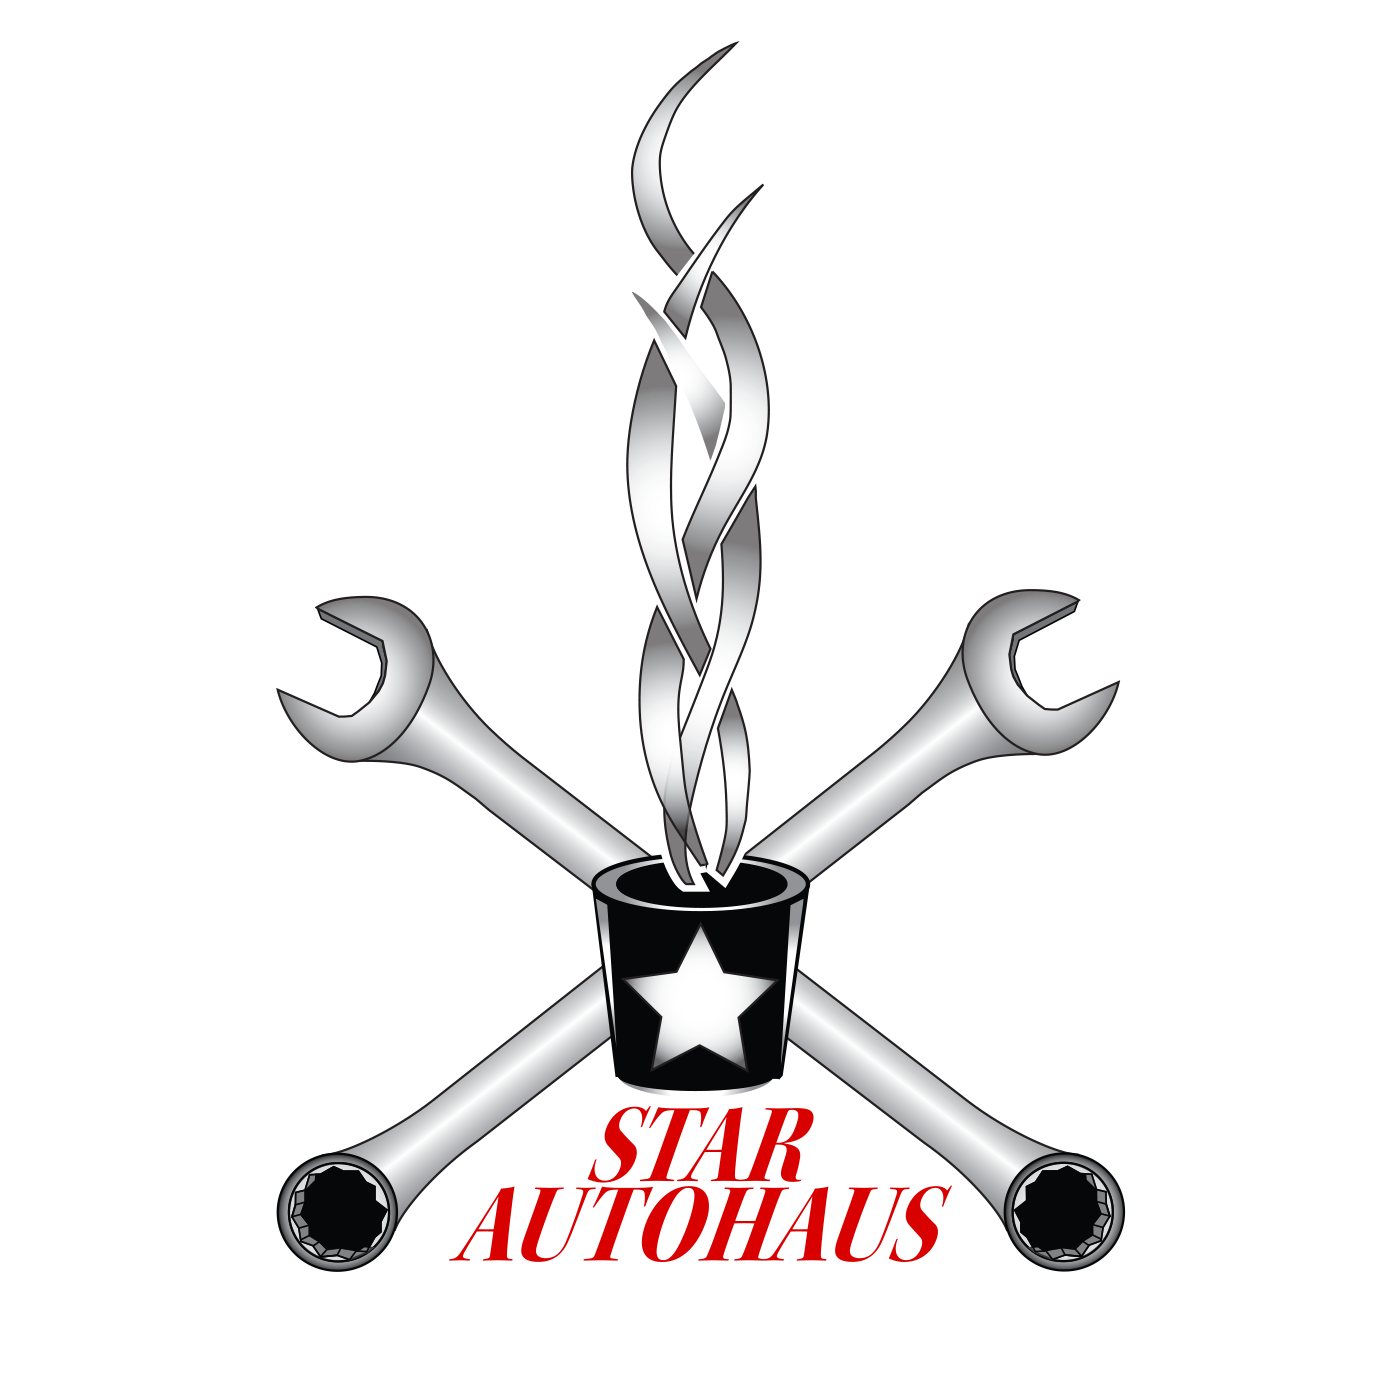 Star Autohaus Logo for Auto Repair Shop in Los Angeles.jpg